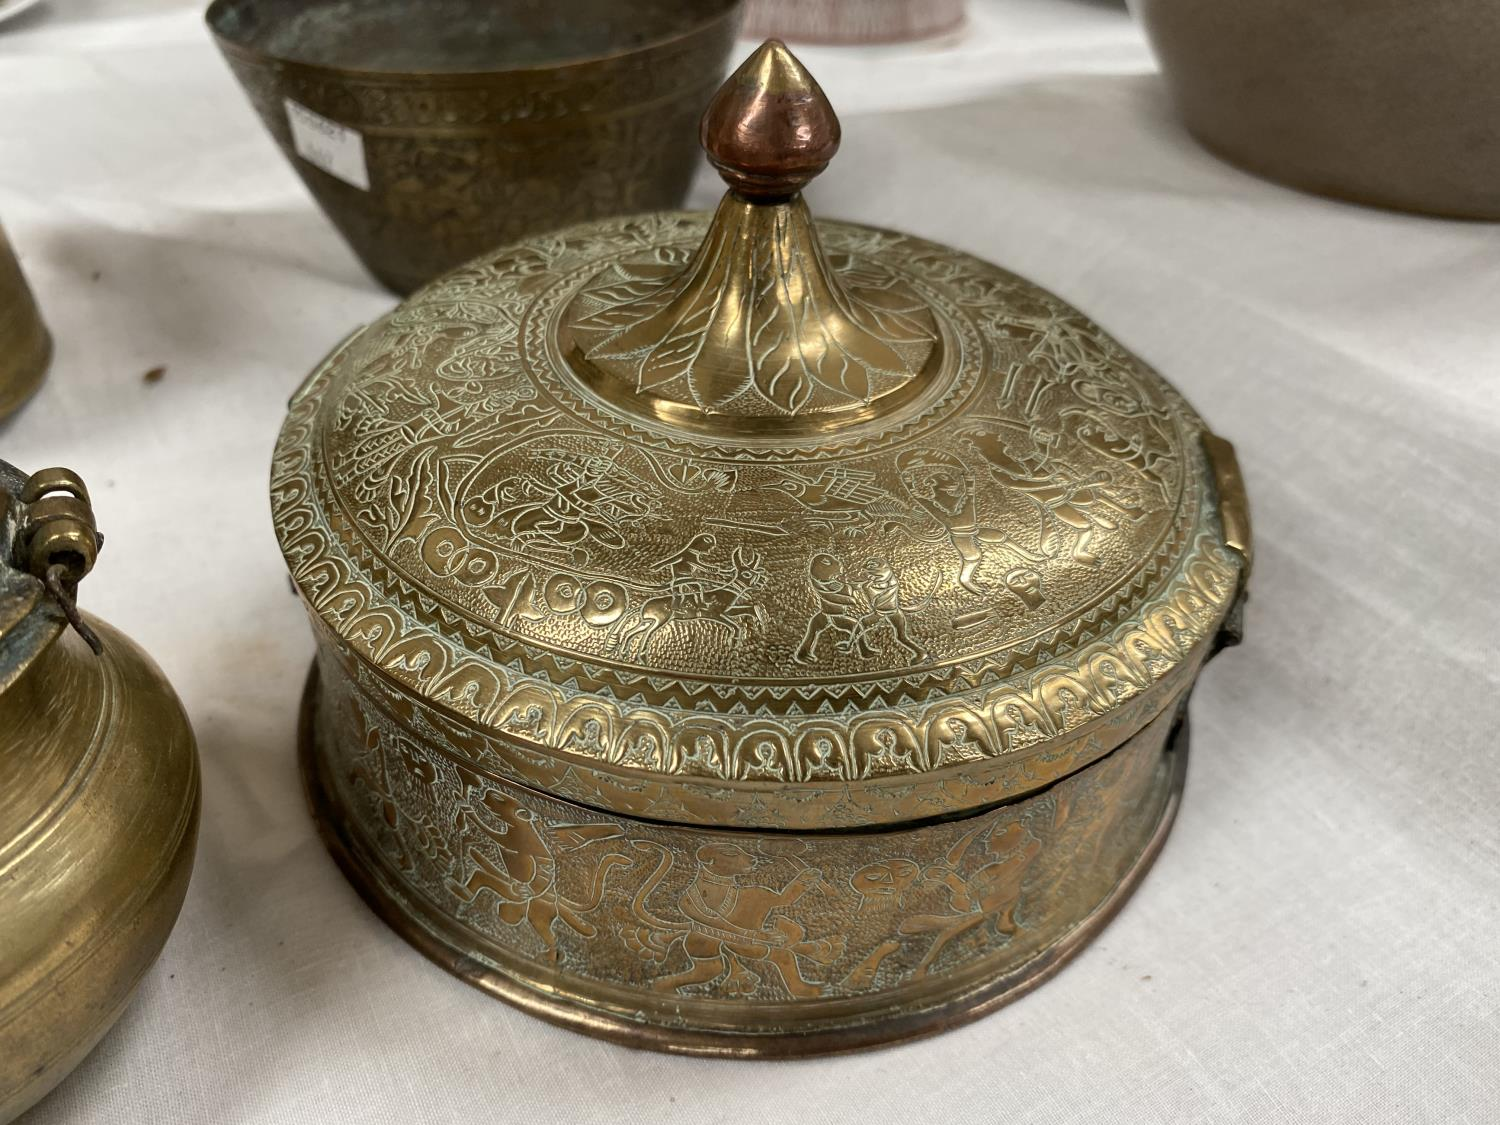 A Indian brass 4 section spice holder; a brass and copper Indian betel container and 2 Indian - Image 4 of 4